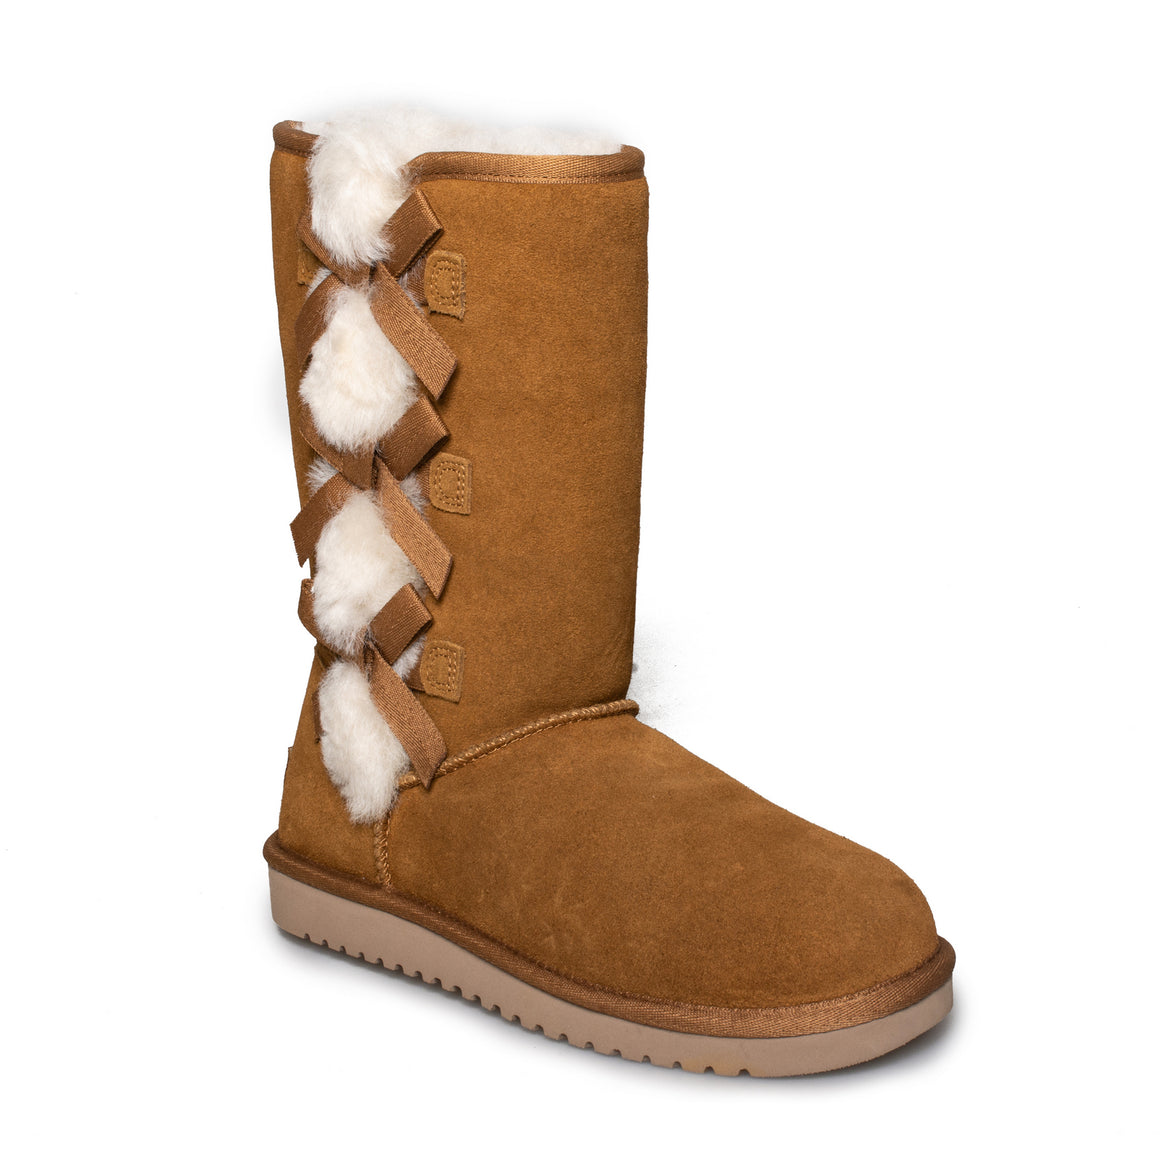 Koolaburra By UGG Victoria Tall Chestnut Boots - Women's